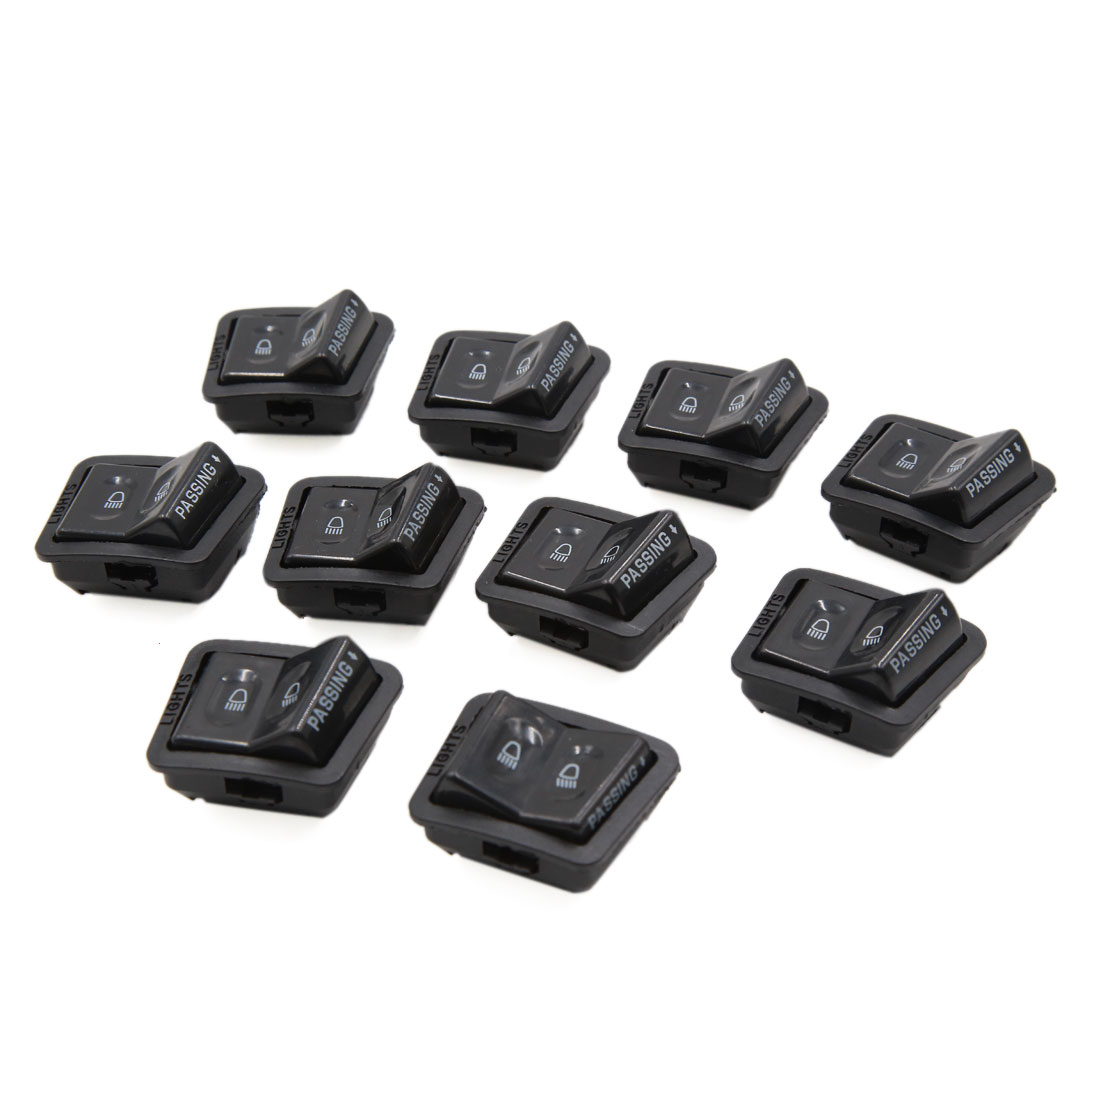 10pcs 12-24V 4 Terminals Hi/lo Lamps Change Motorcycle Light Switch for GY6125